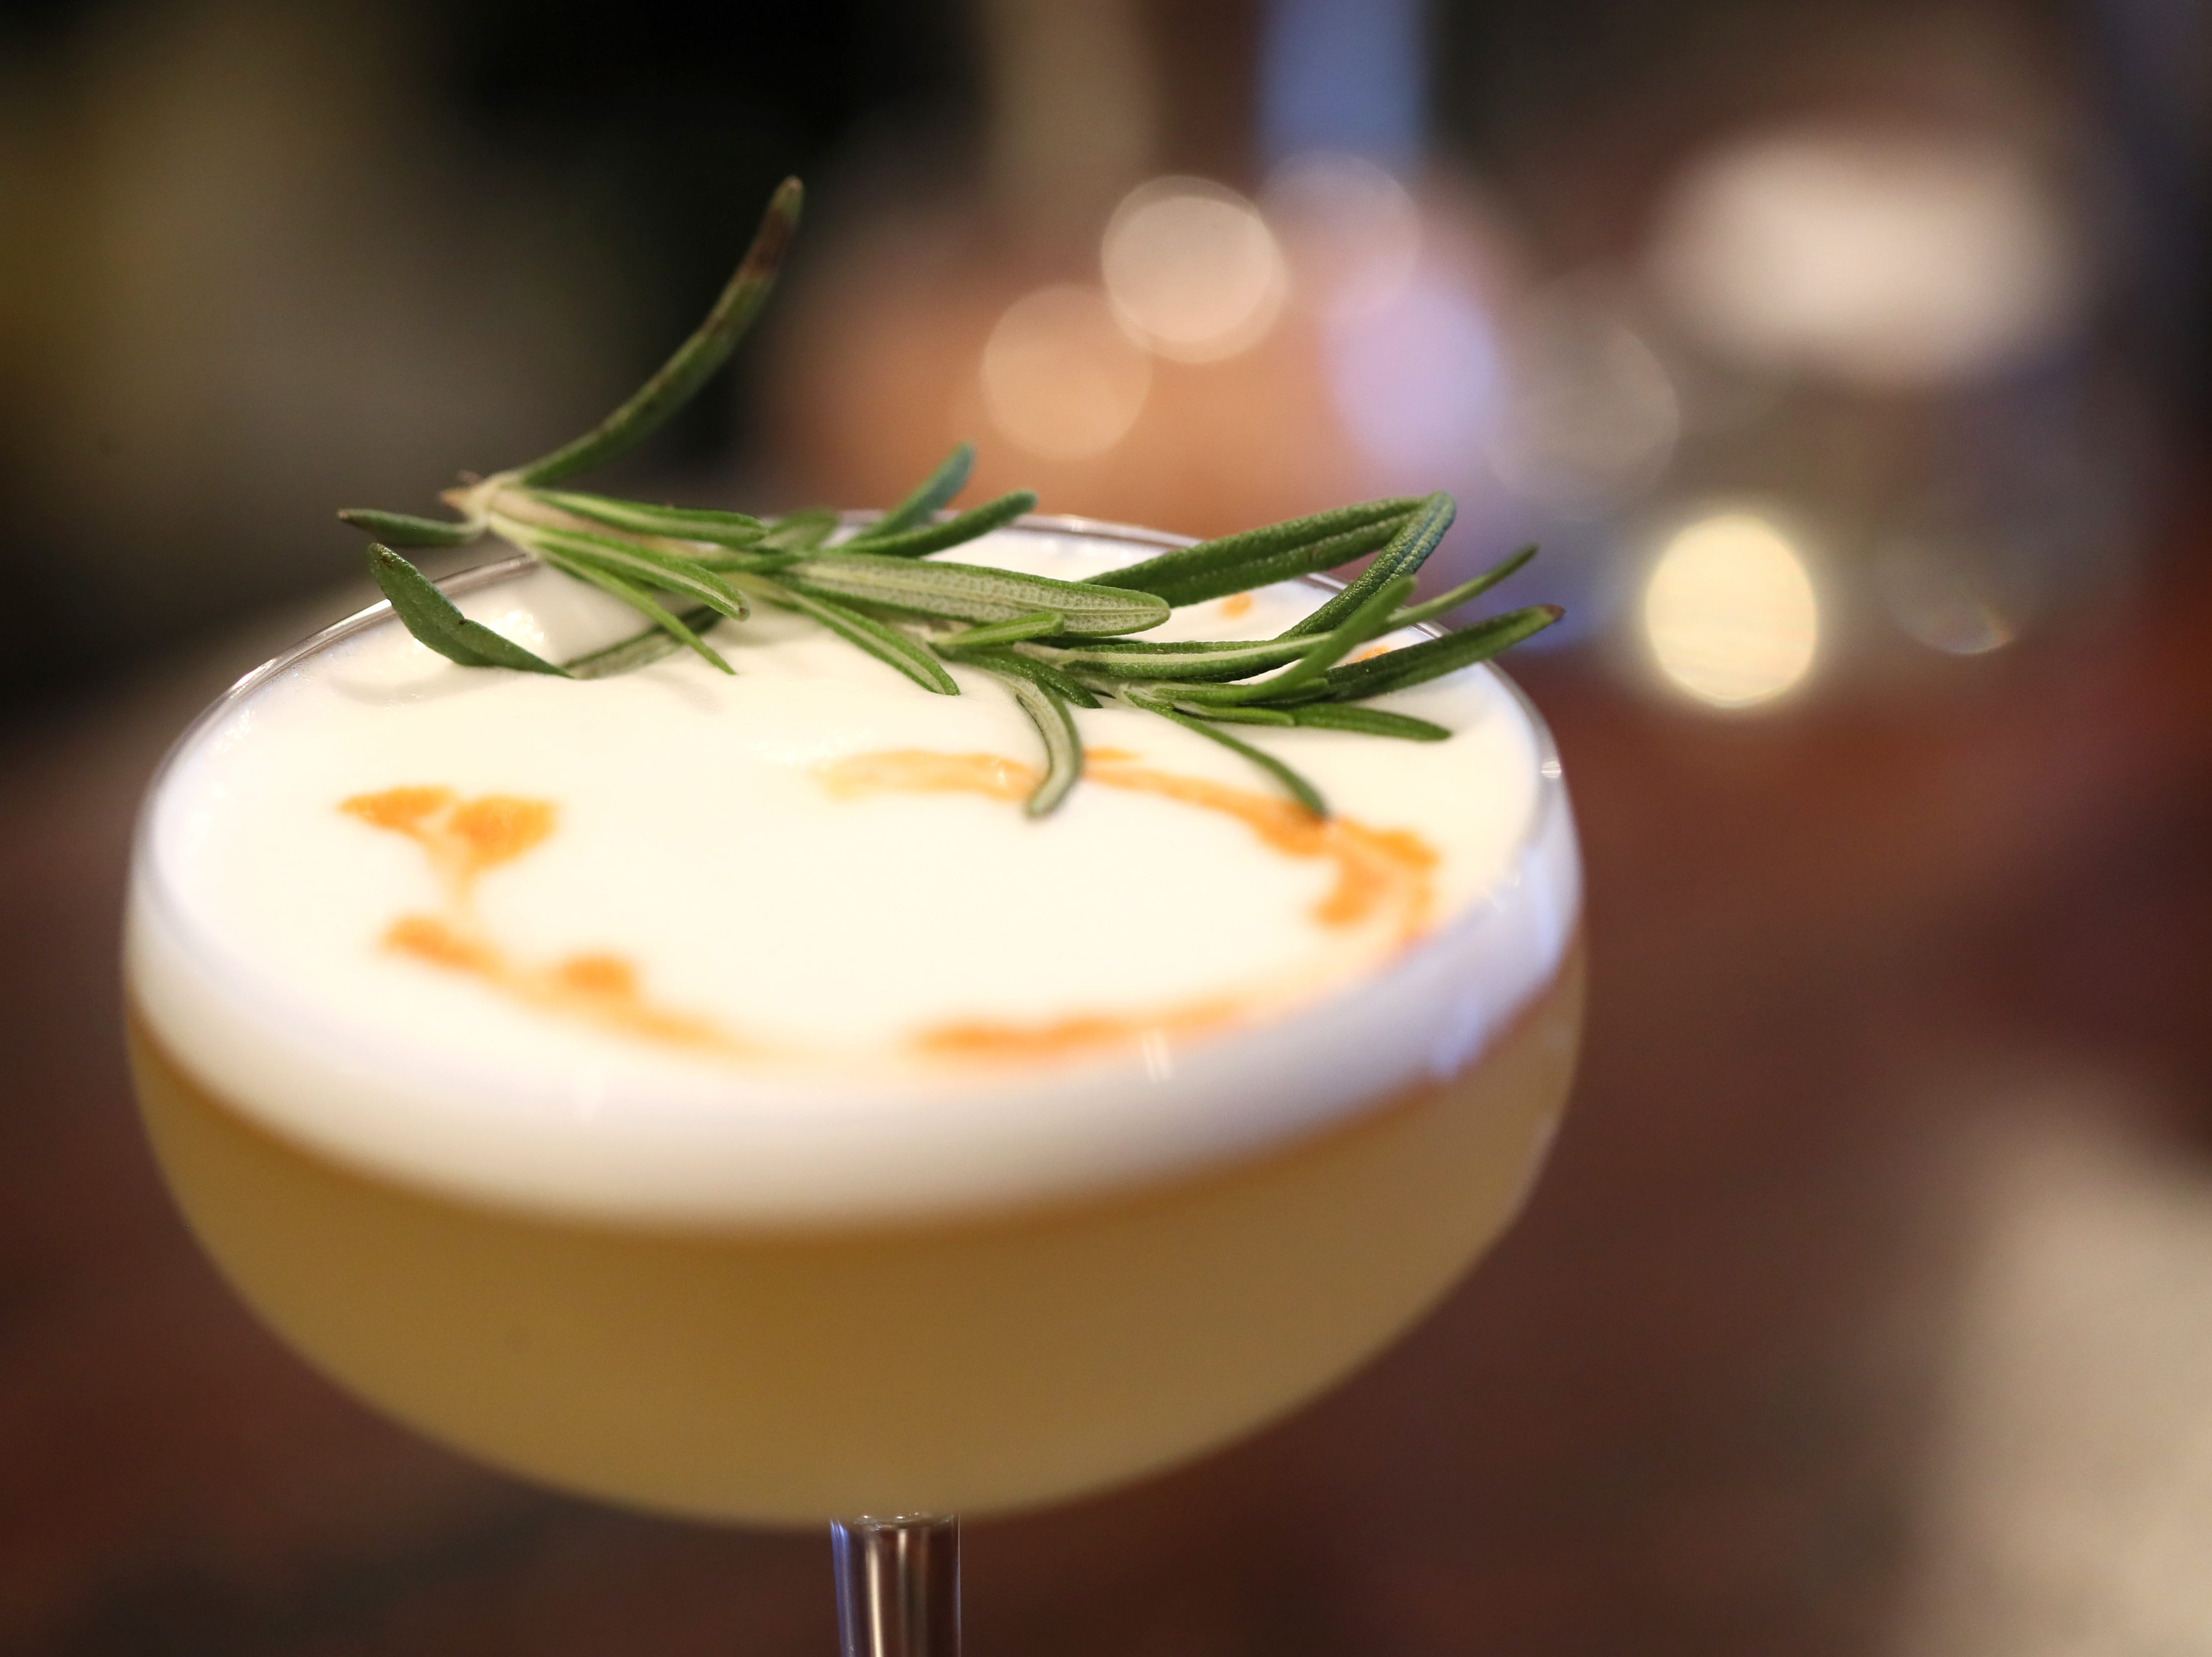 A Rocky the Flying Squirrel cocktail, with amaretto, rhubarb bitters, lemon, egg white, cinnamon and a rosemary garnish at Ecco Restaurant in Midtown's Evergreen Historic District.